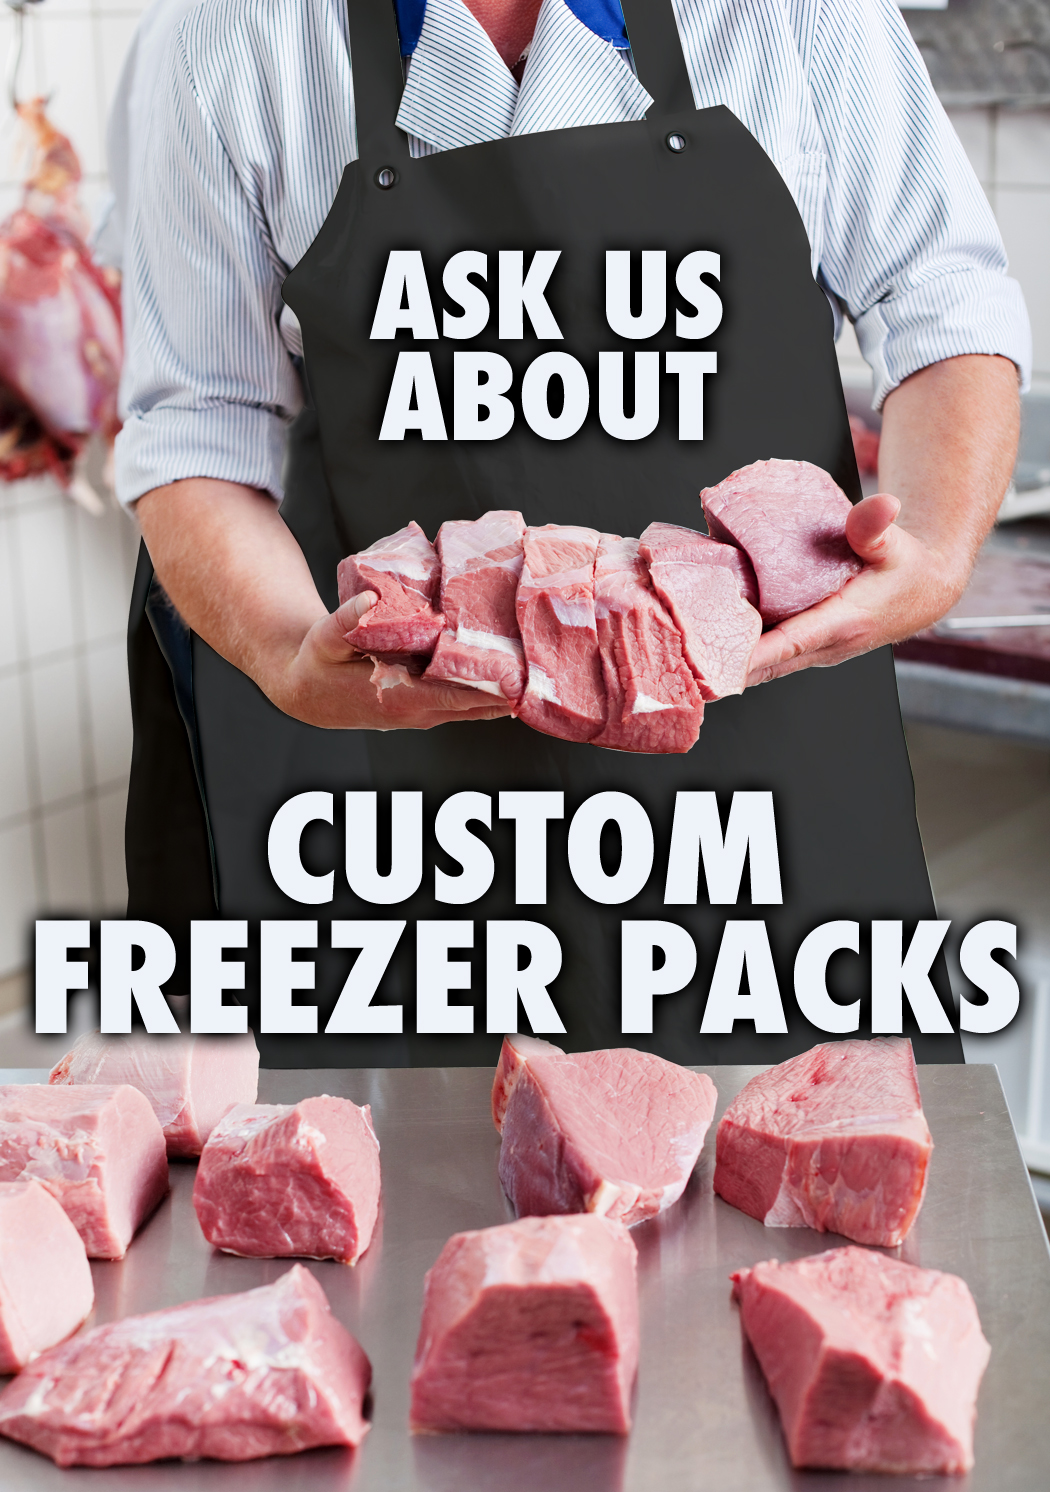 Ask about Custom Freezer Packs